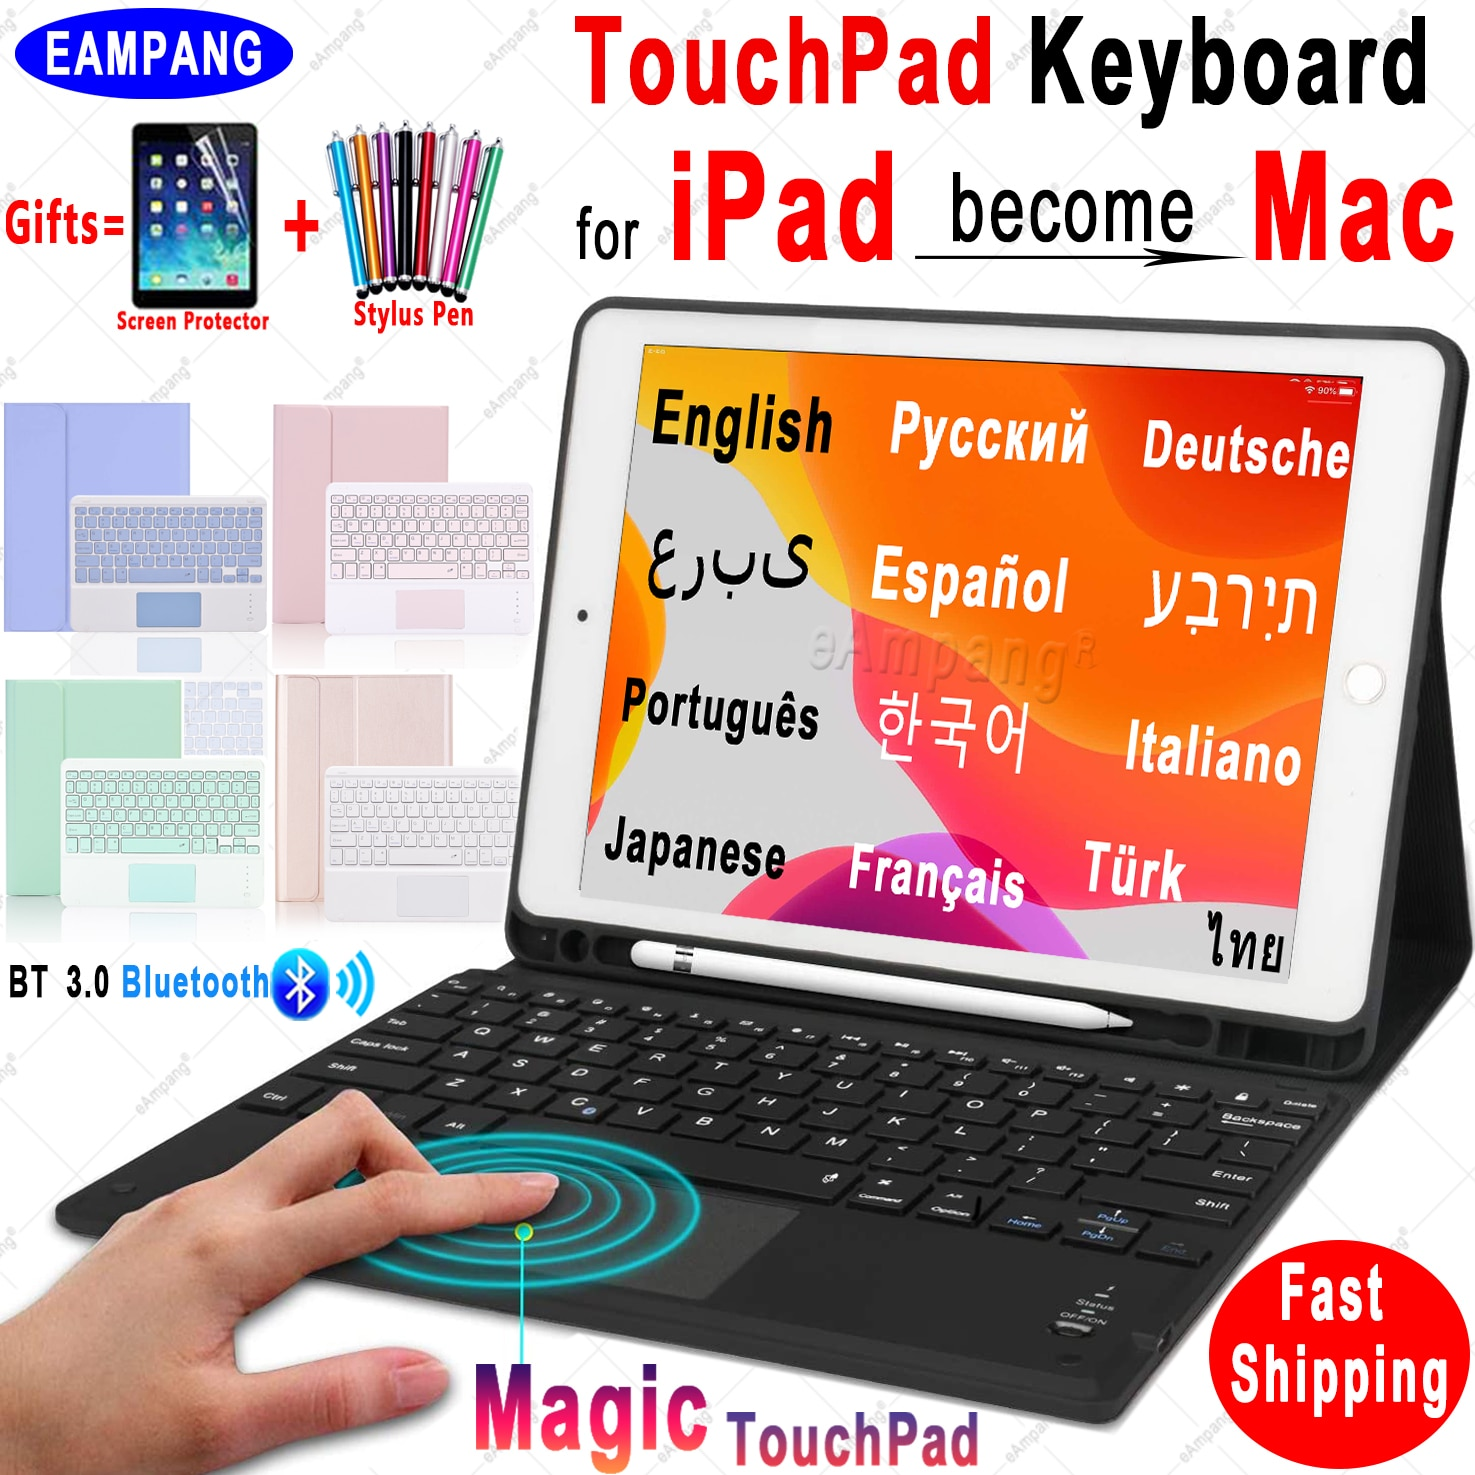 Magic TouchPad Keyboard for iPad 10.2 Keyboard Case for Apple iPad 9.7 2017 2018 Air 2 3 4 Pro 9.7 10.5 11 2018 2019 2020 8th